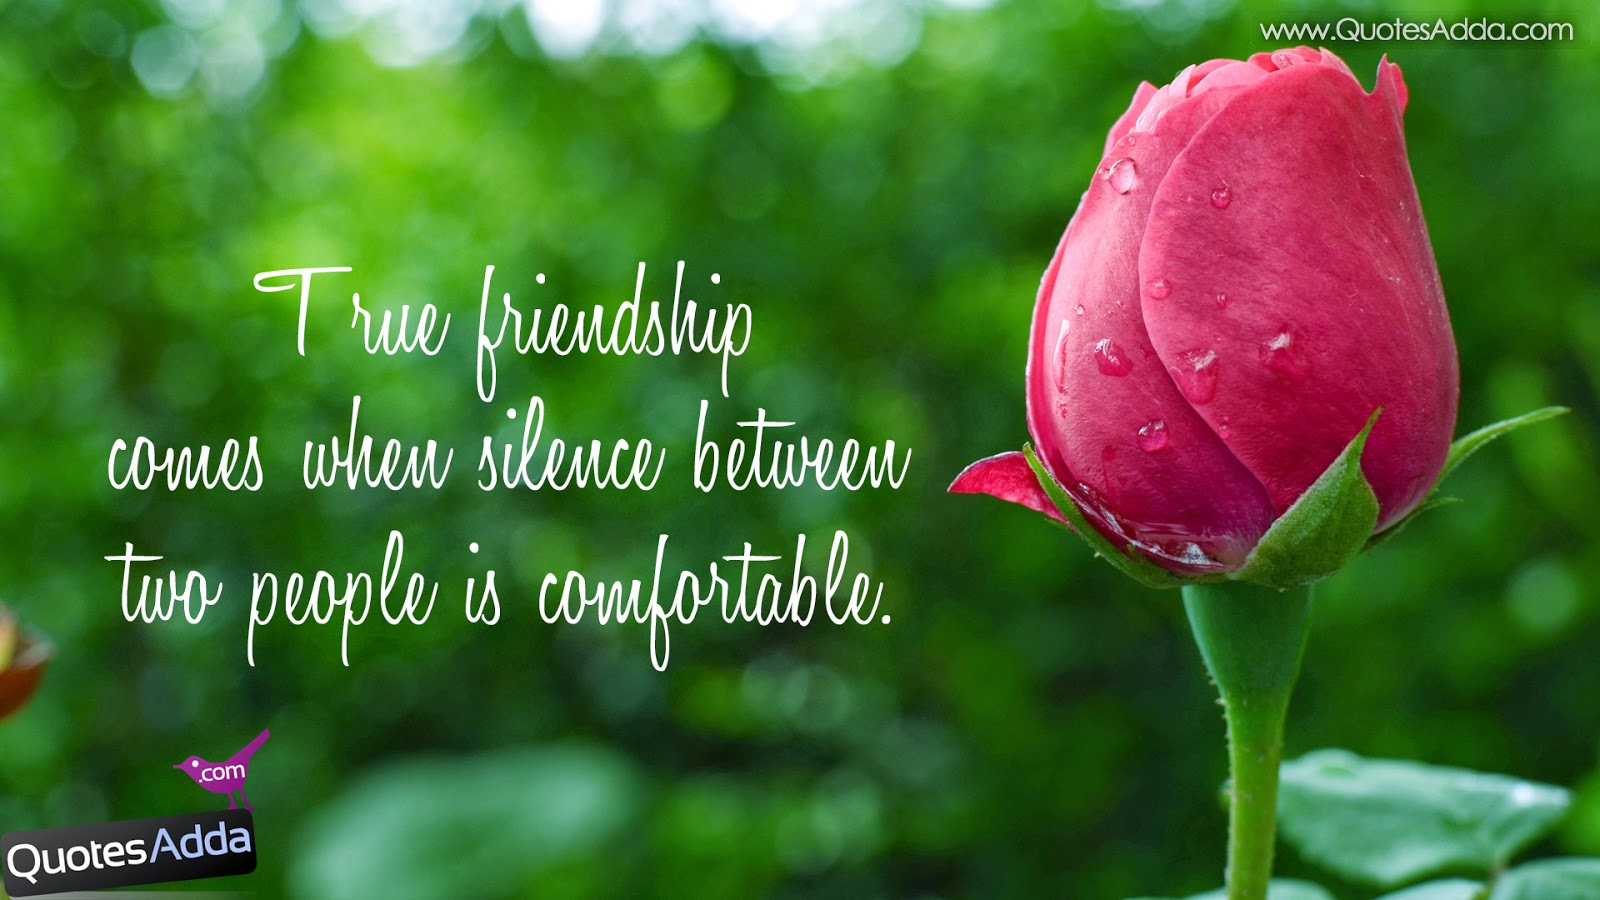 Best Friend Wallpapers Quotes - WallpaperSafari